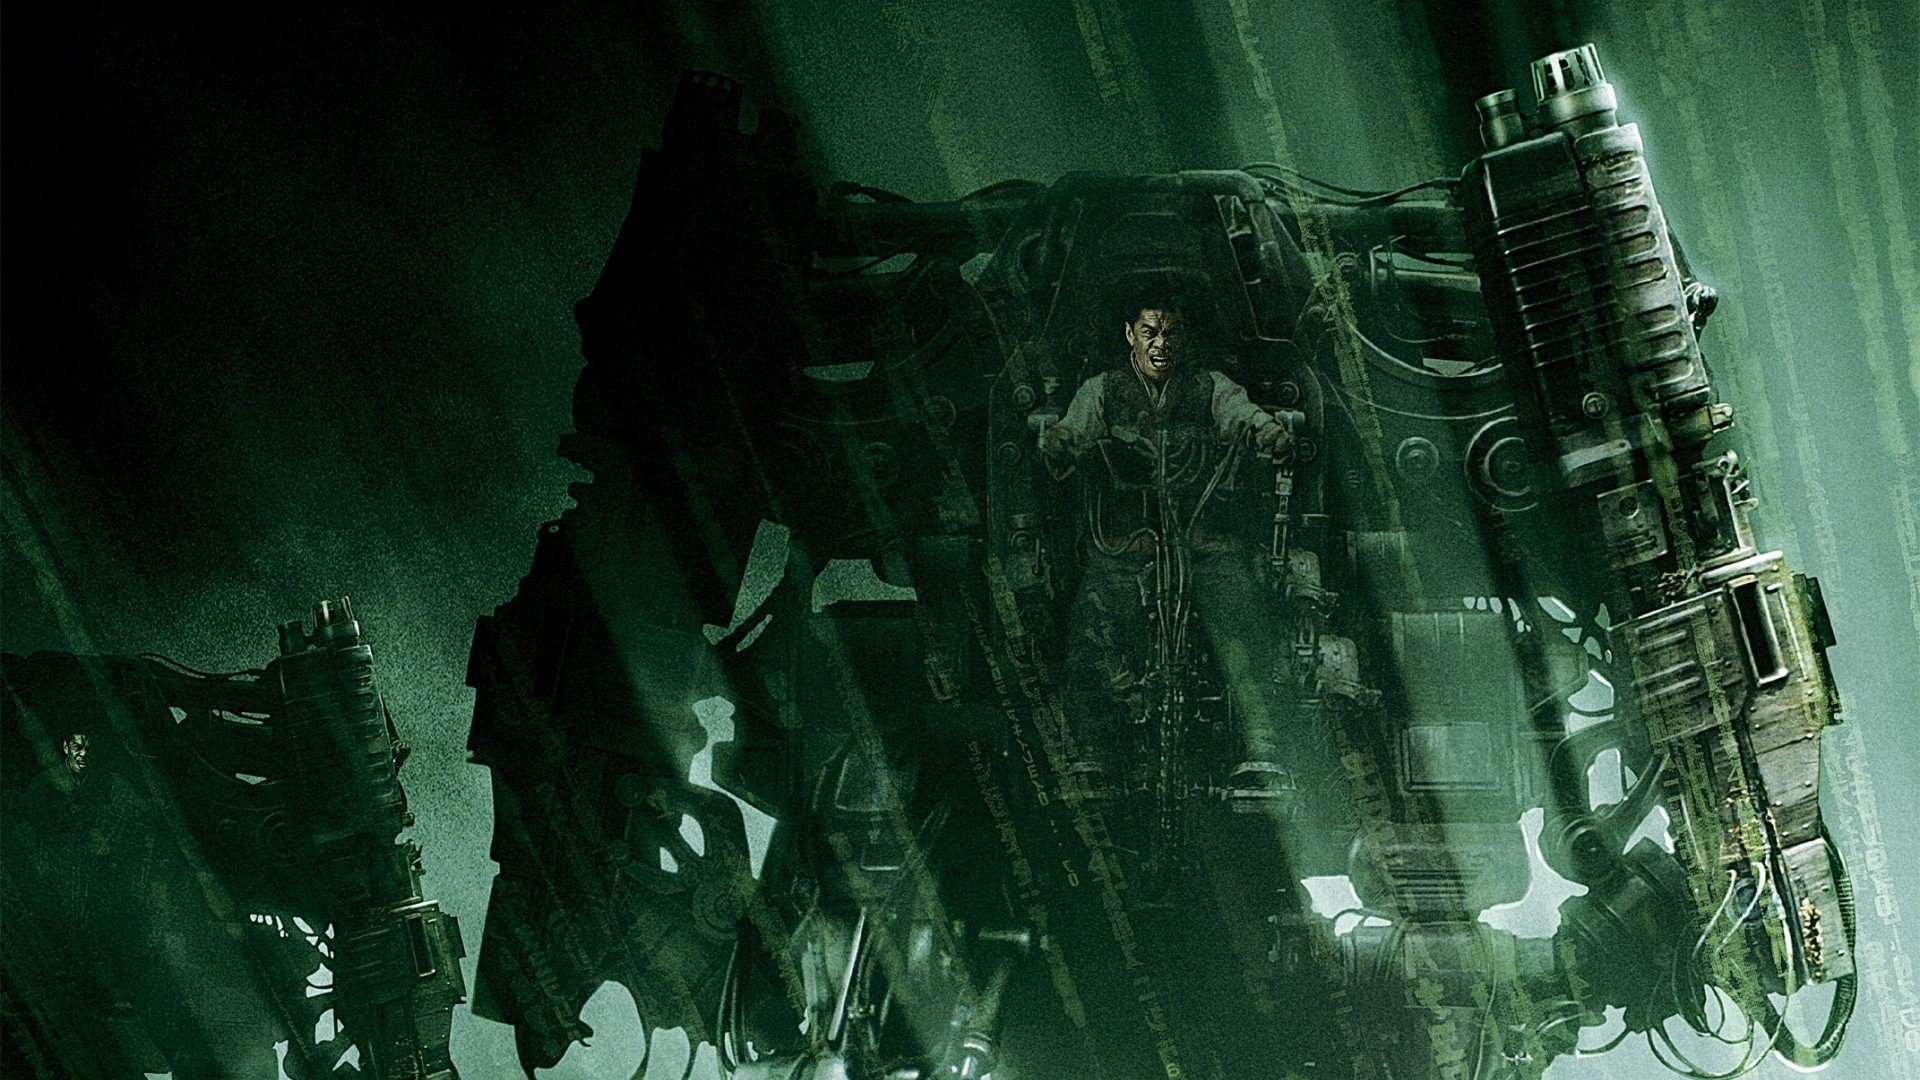 The matrix wallpapers wallpapers high quality download free voltagebd Choice Image